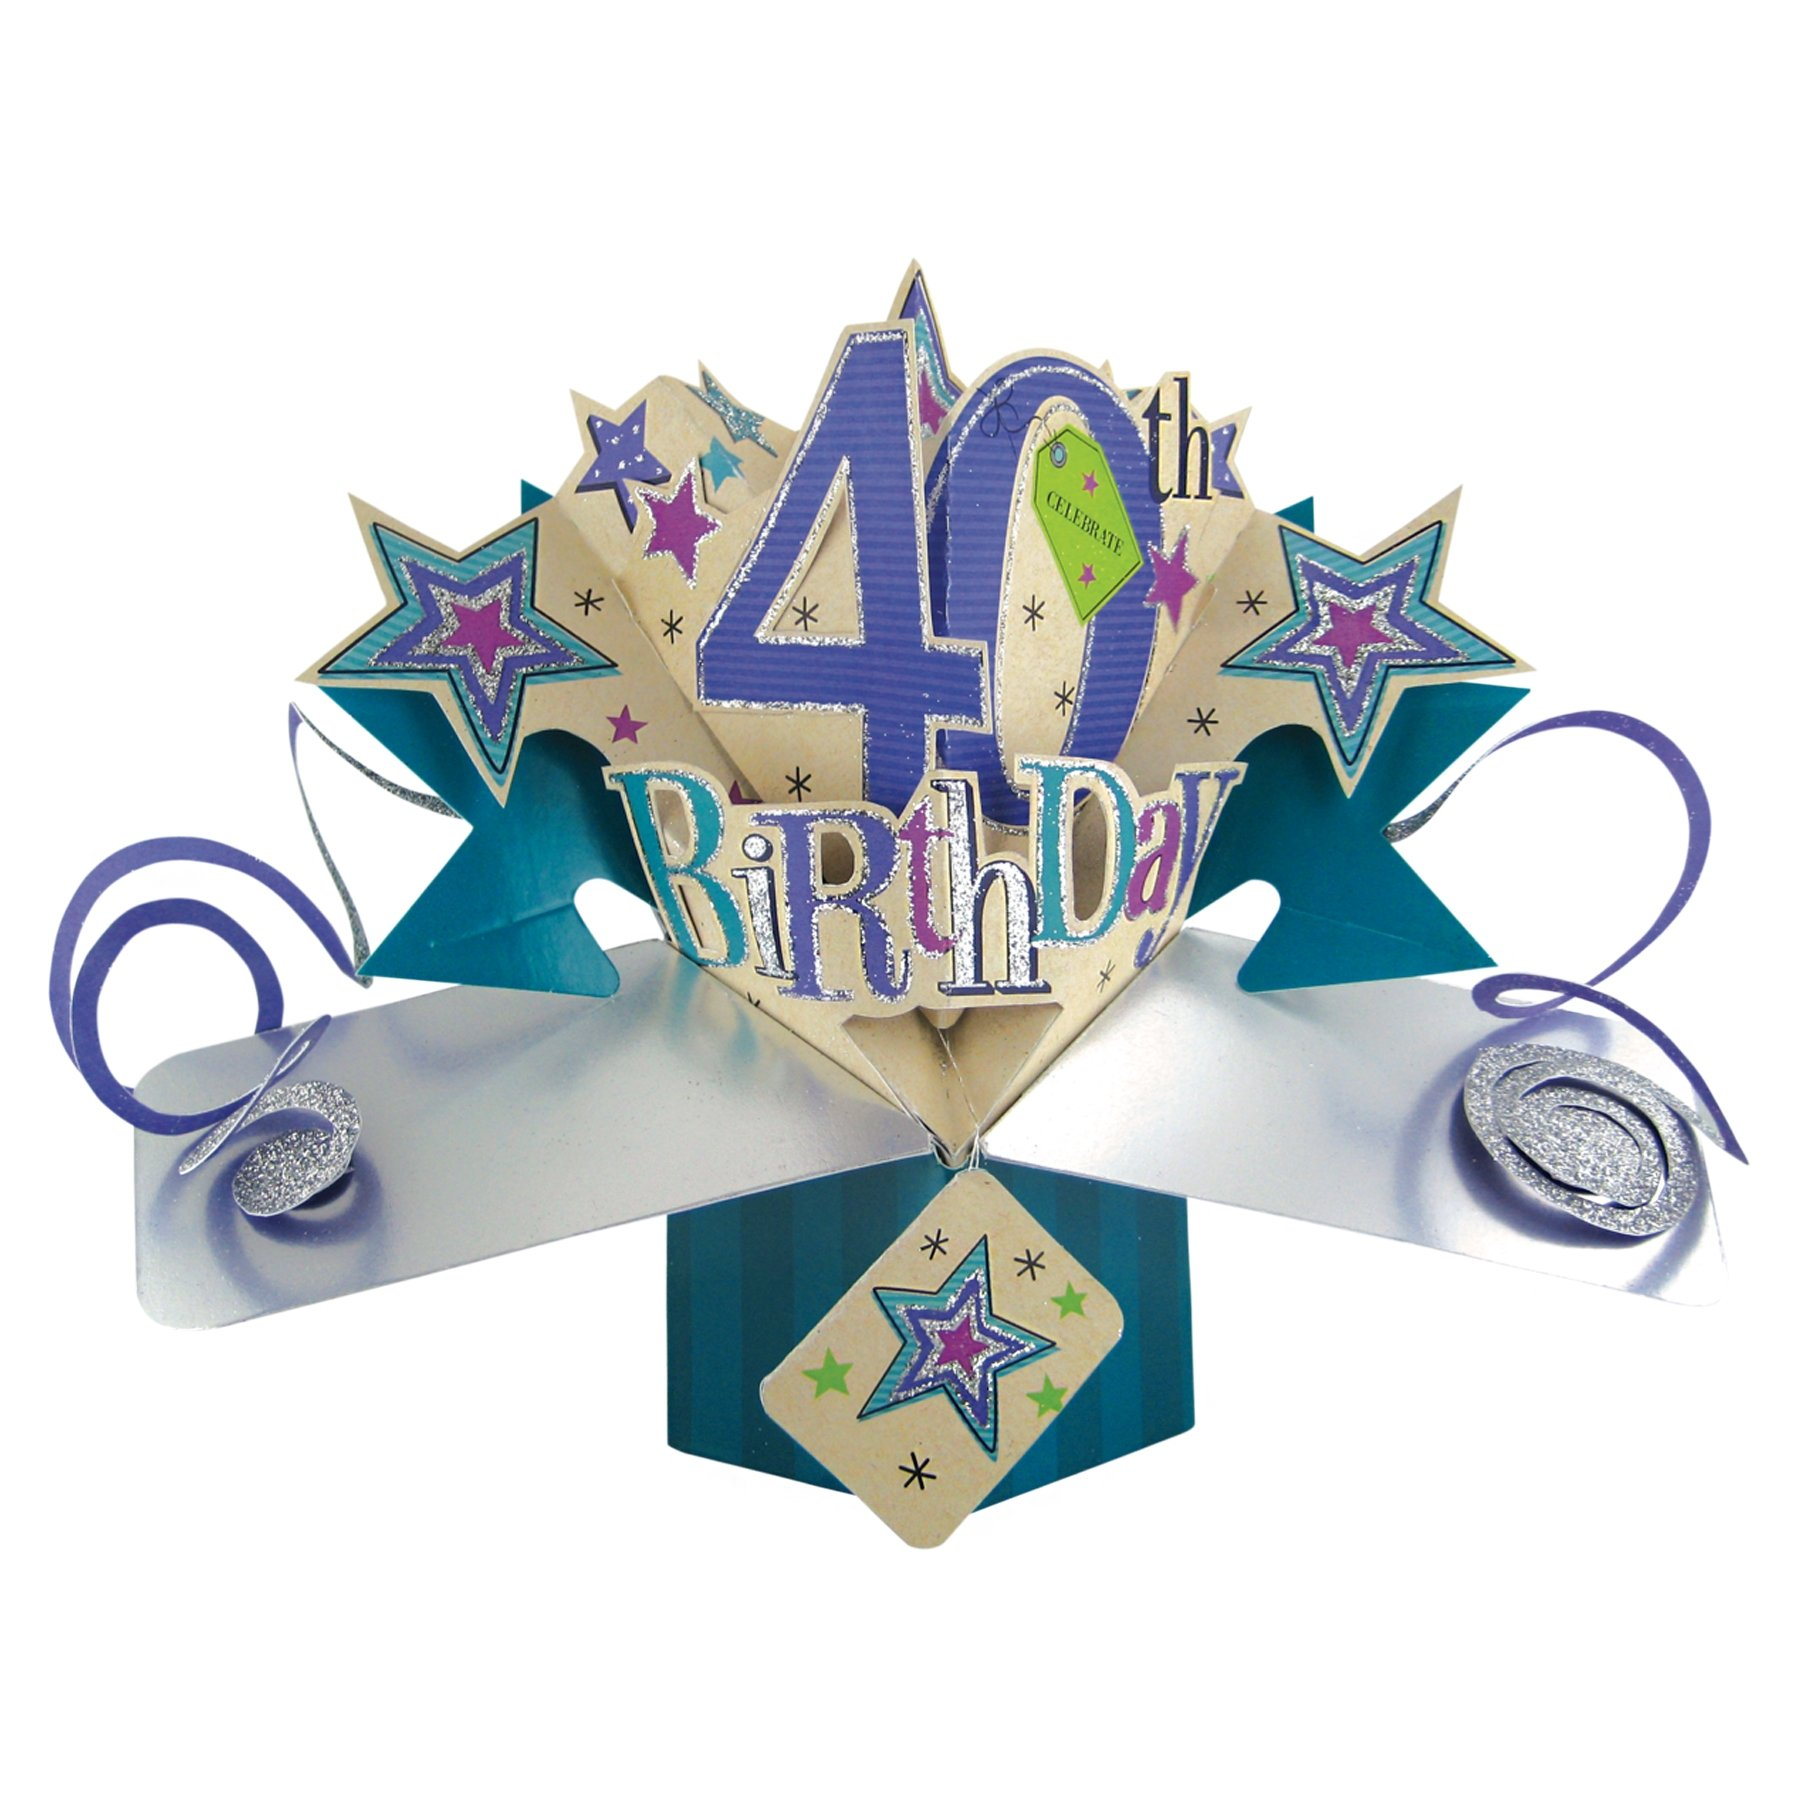 THE ORIGINAL POP UPS - 089 - 40TH BIRTHDAY - GREETING CARD [Office Product] by Second Nature Pop ups (Image #1)